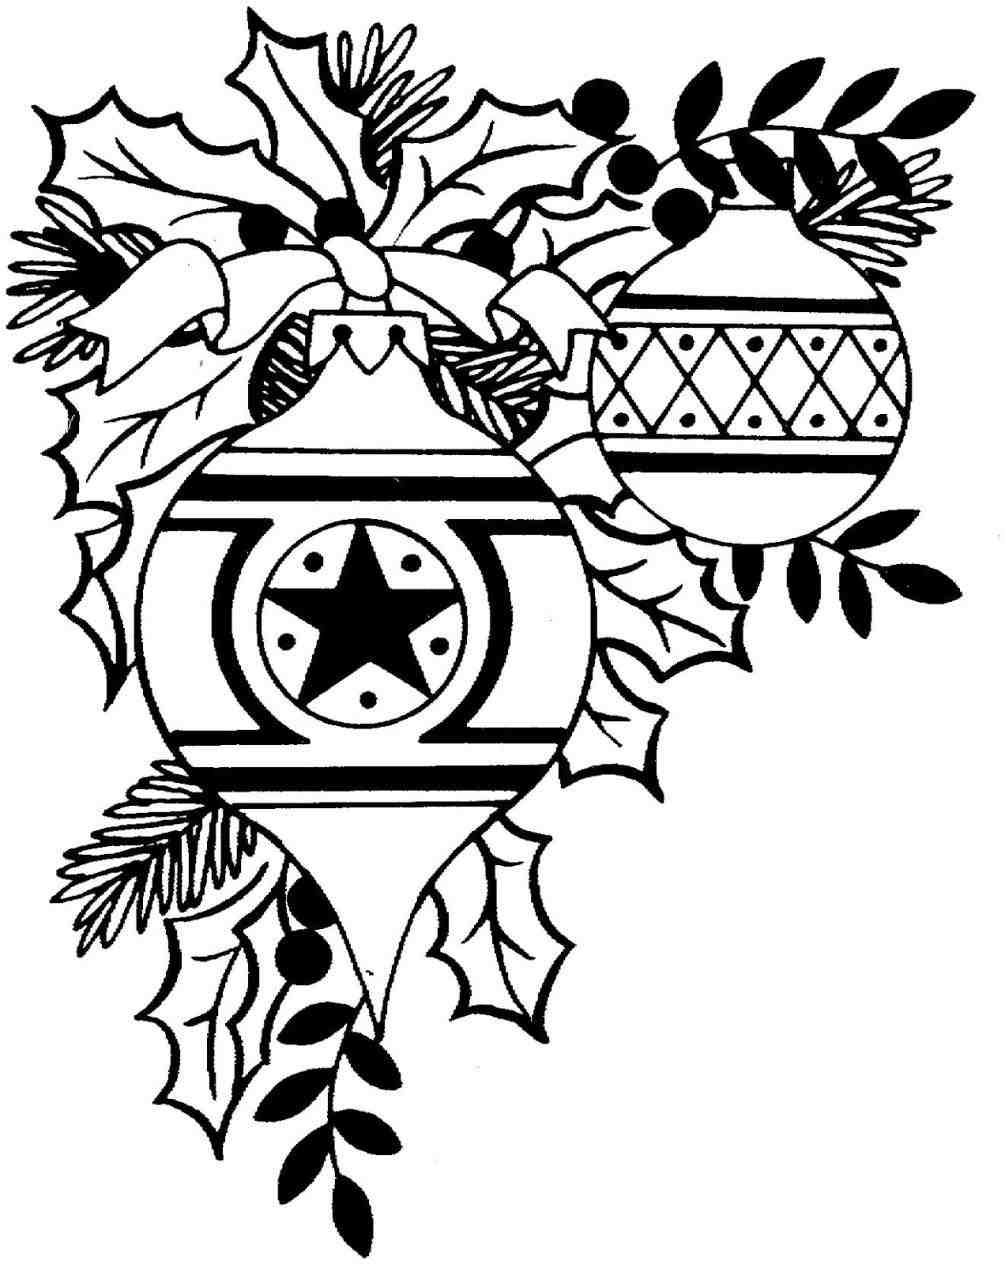 1005x1264 Ingcom Transparent Christmas Tree Clipart Free Black And White